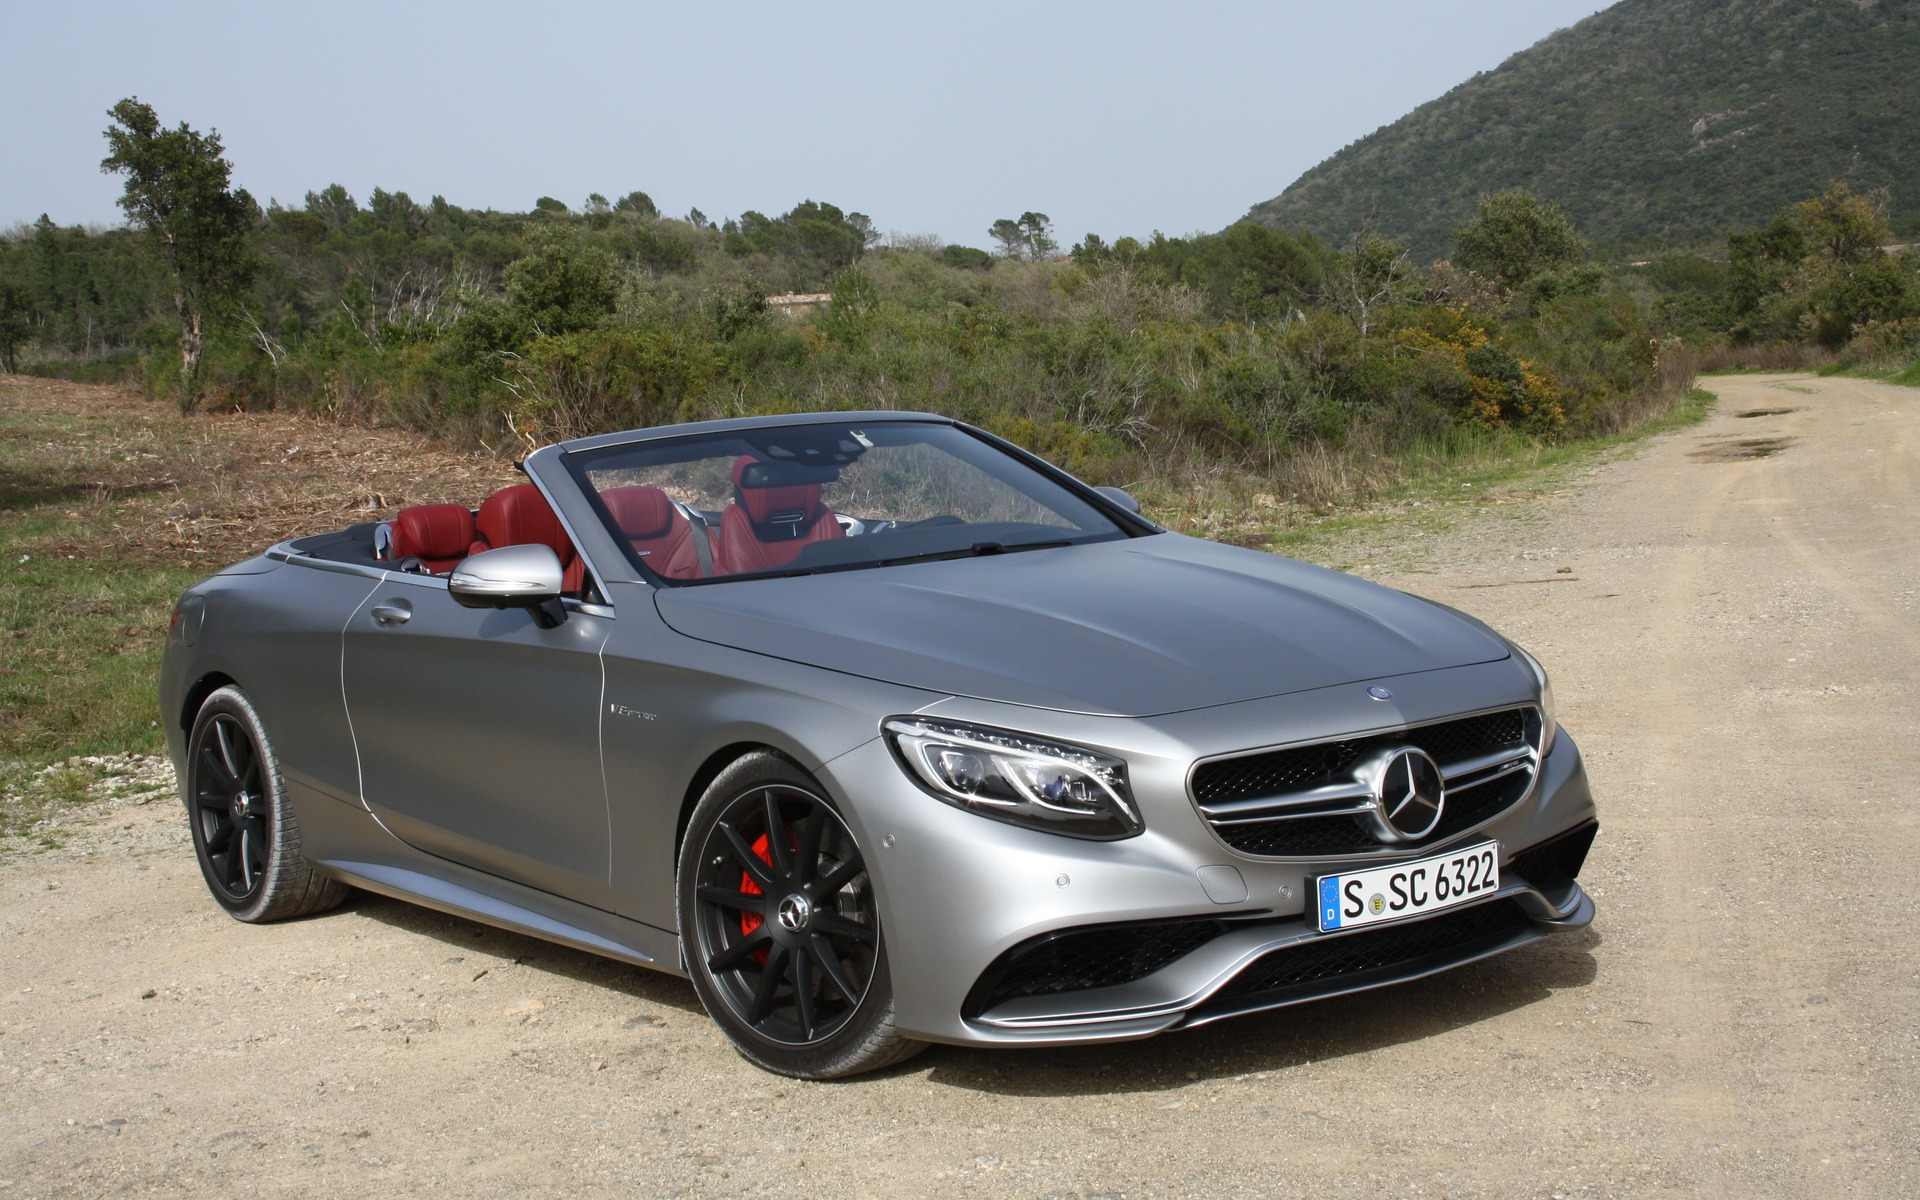 Le Meilleur 2017 Mercedes Benz S Class Cabriolet When Too Much Isn't Ce Mois Ci